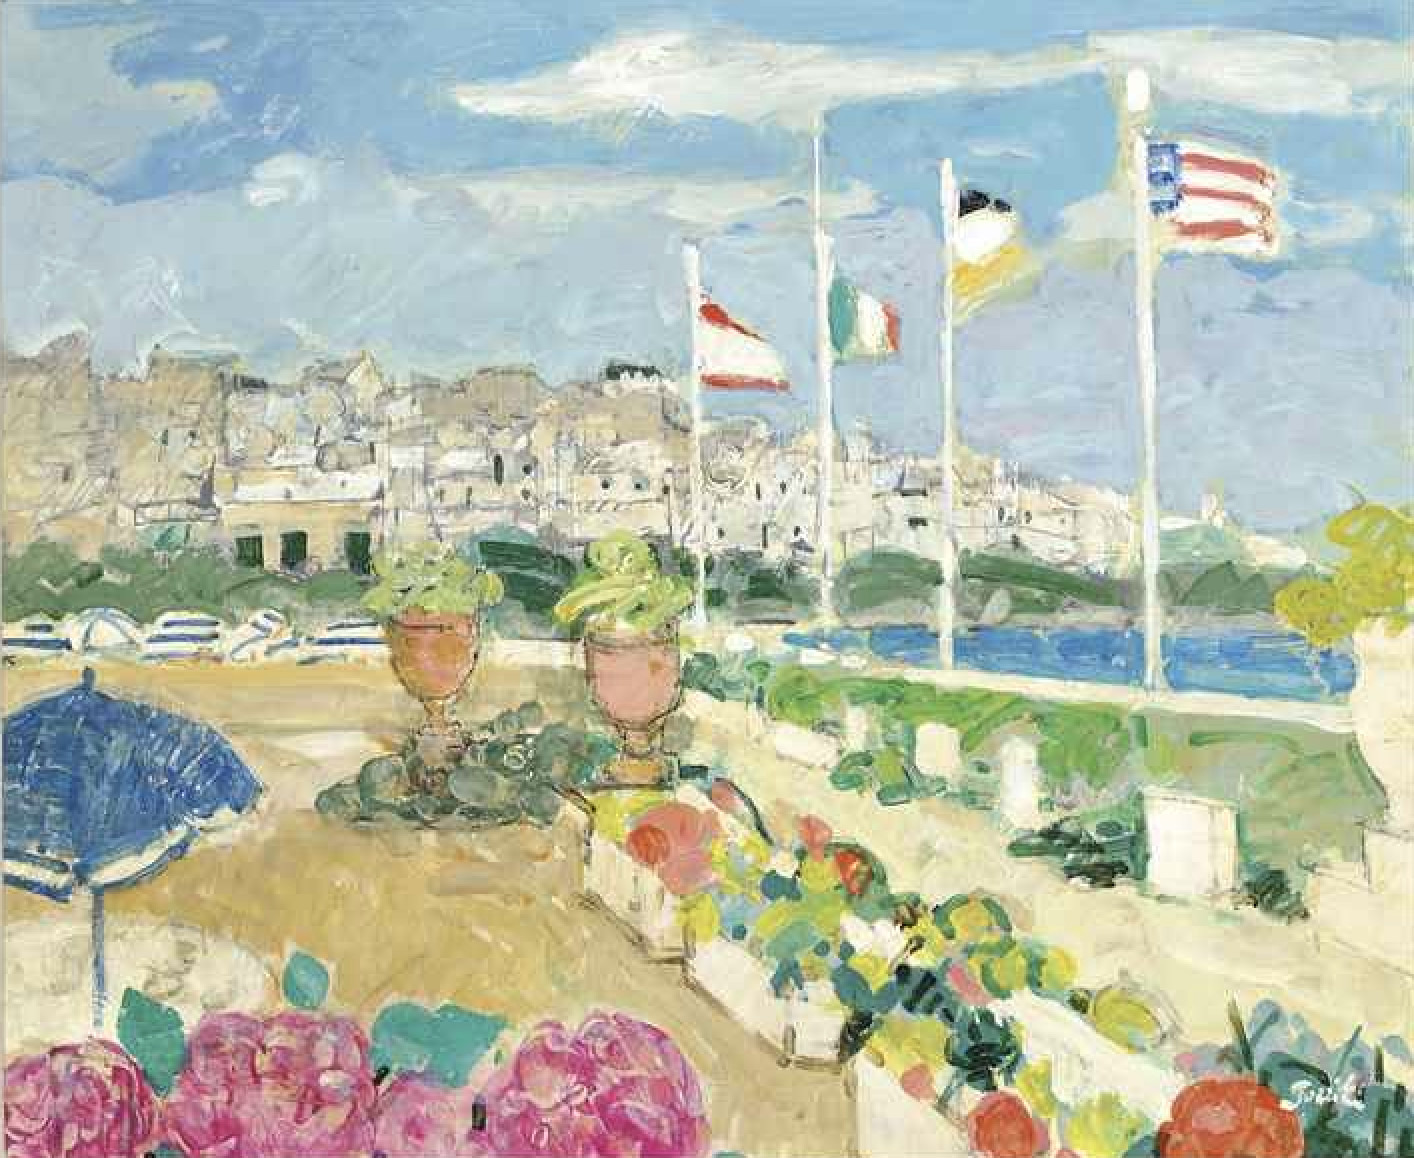 "<span class=""link fancybox-details-link""><a href=""/artists/46-gilles-gorriti/works/271-gilles-gorriti-biarritz-signed-gorriti-signed-again-and-inscribed-biarritz-15f-gorriti/"">View Detail Page</a></span><div class=""artist""><strong>Gilles Gorriti</strong></div> 1939 <div class=""title""><em>Biarritz signed Gorriti signed again and inscribed ""BiARRITZ/15F/Gorriti</em></div> <div class=""medium"">Oil on Canvas</div> <div class=""dimensions"">70 x 82 cm framed</div><div class=""price"">£2,200.00</div>"